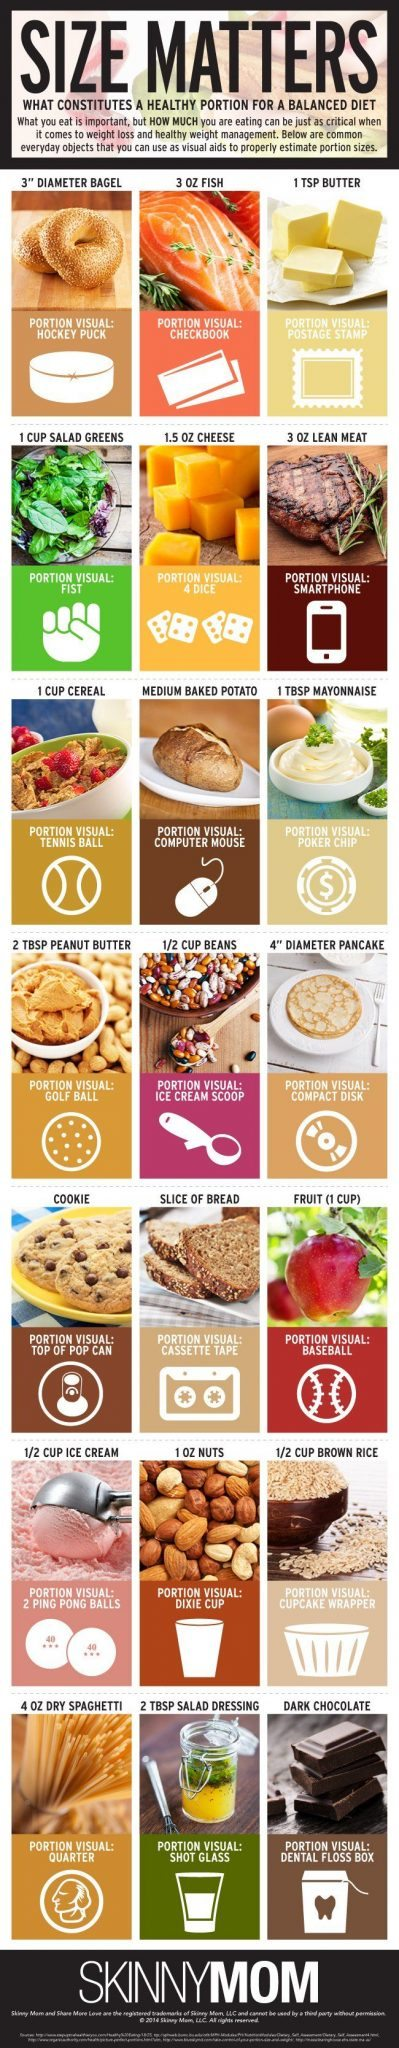 portions, portion control, healthy eating